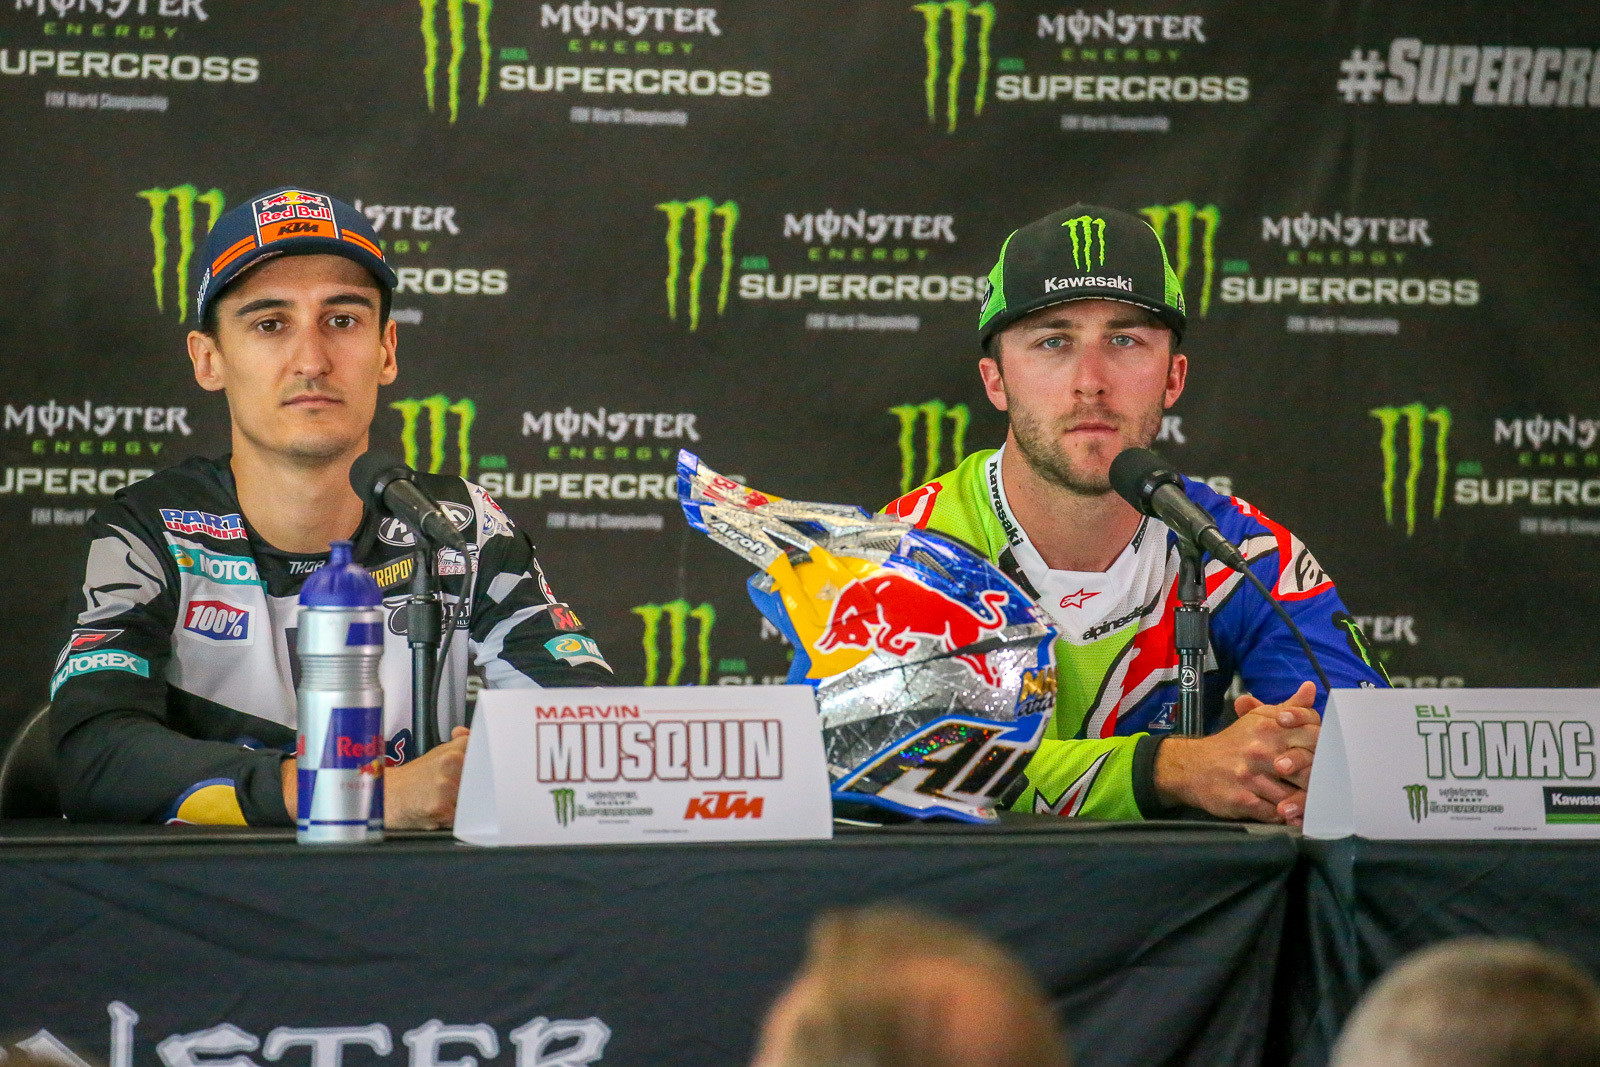 It's still a topic on the Vital MX Forums, on social media and around the pits, but Marvin Musquin and Eli Tomac have little appetite for talking about what happened during last weekend's main event.